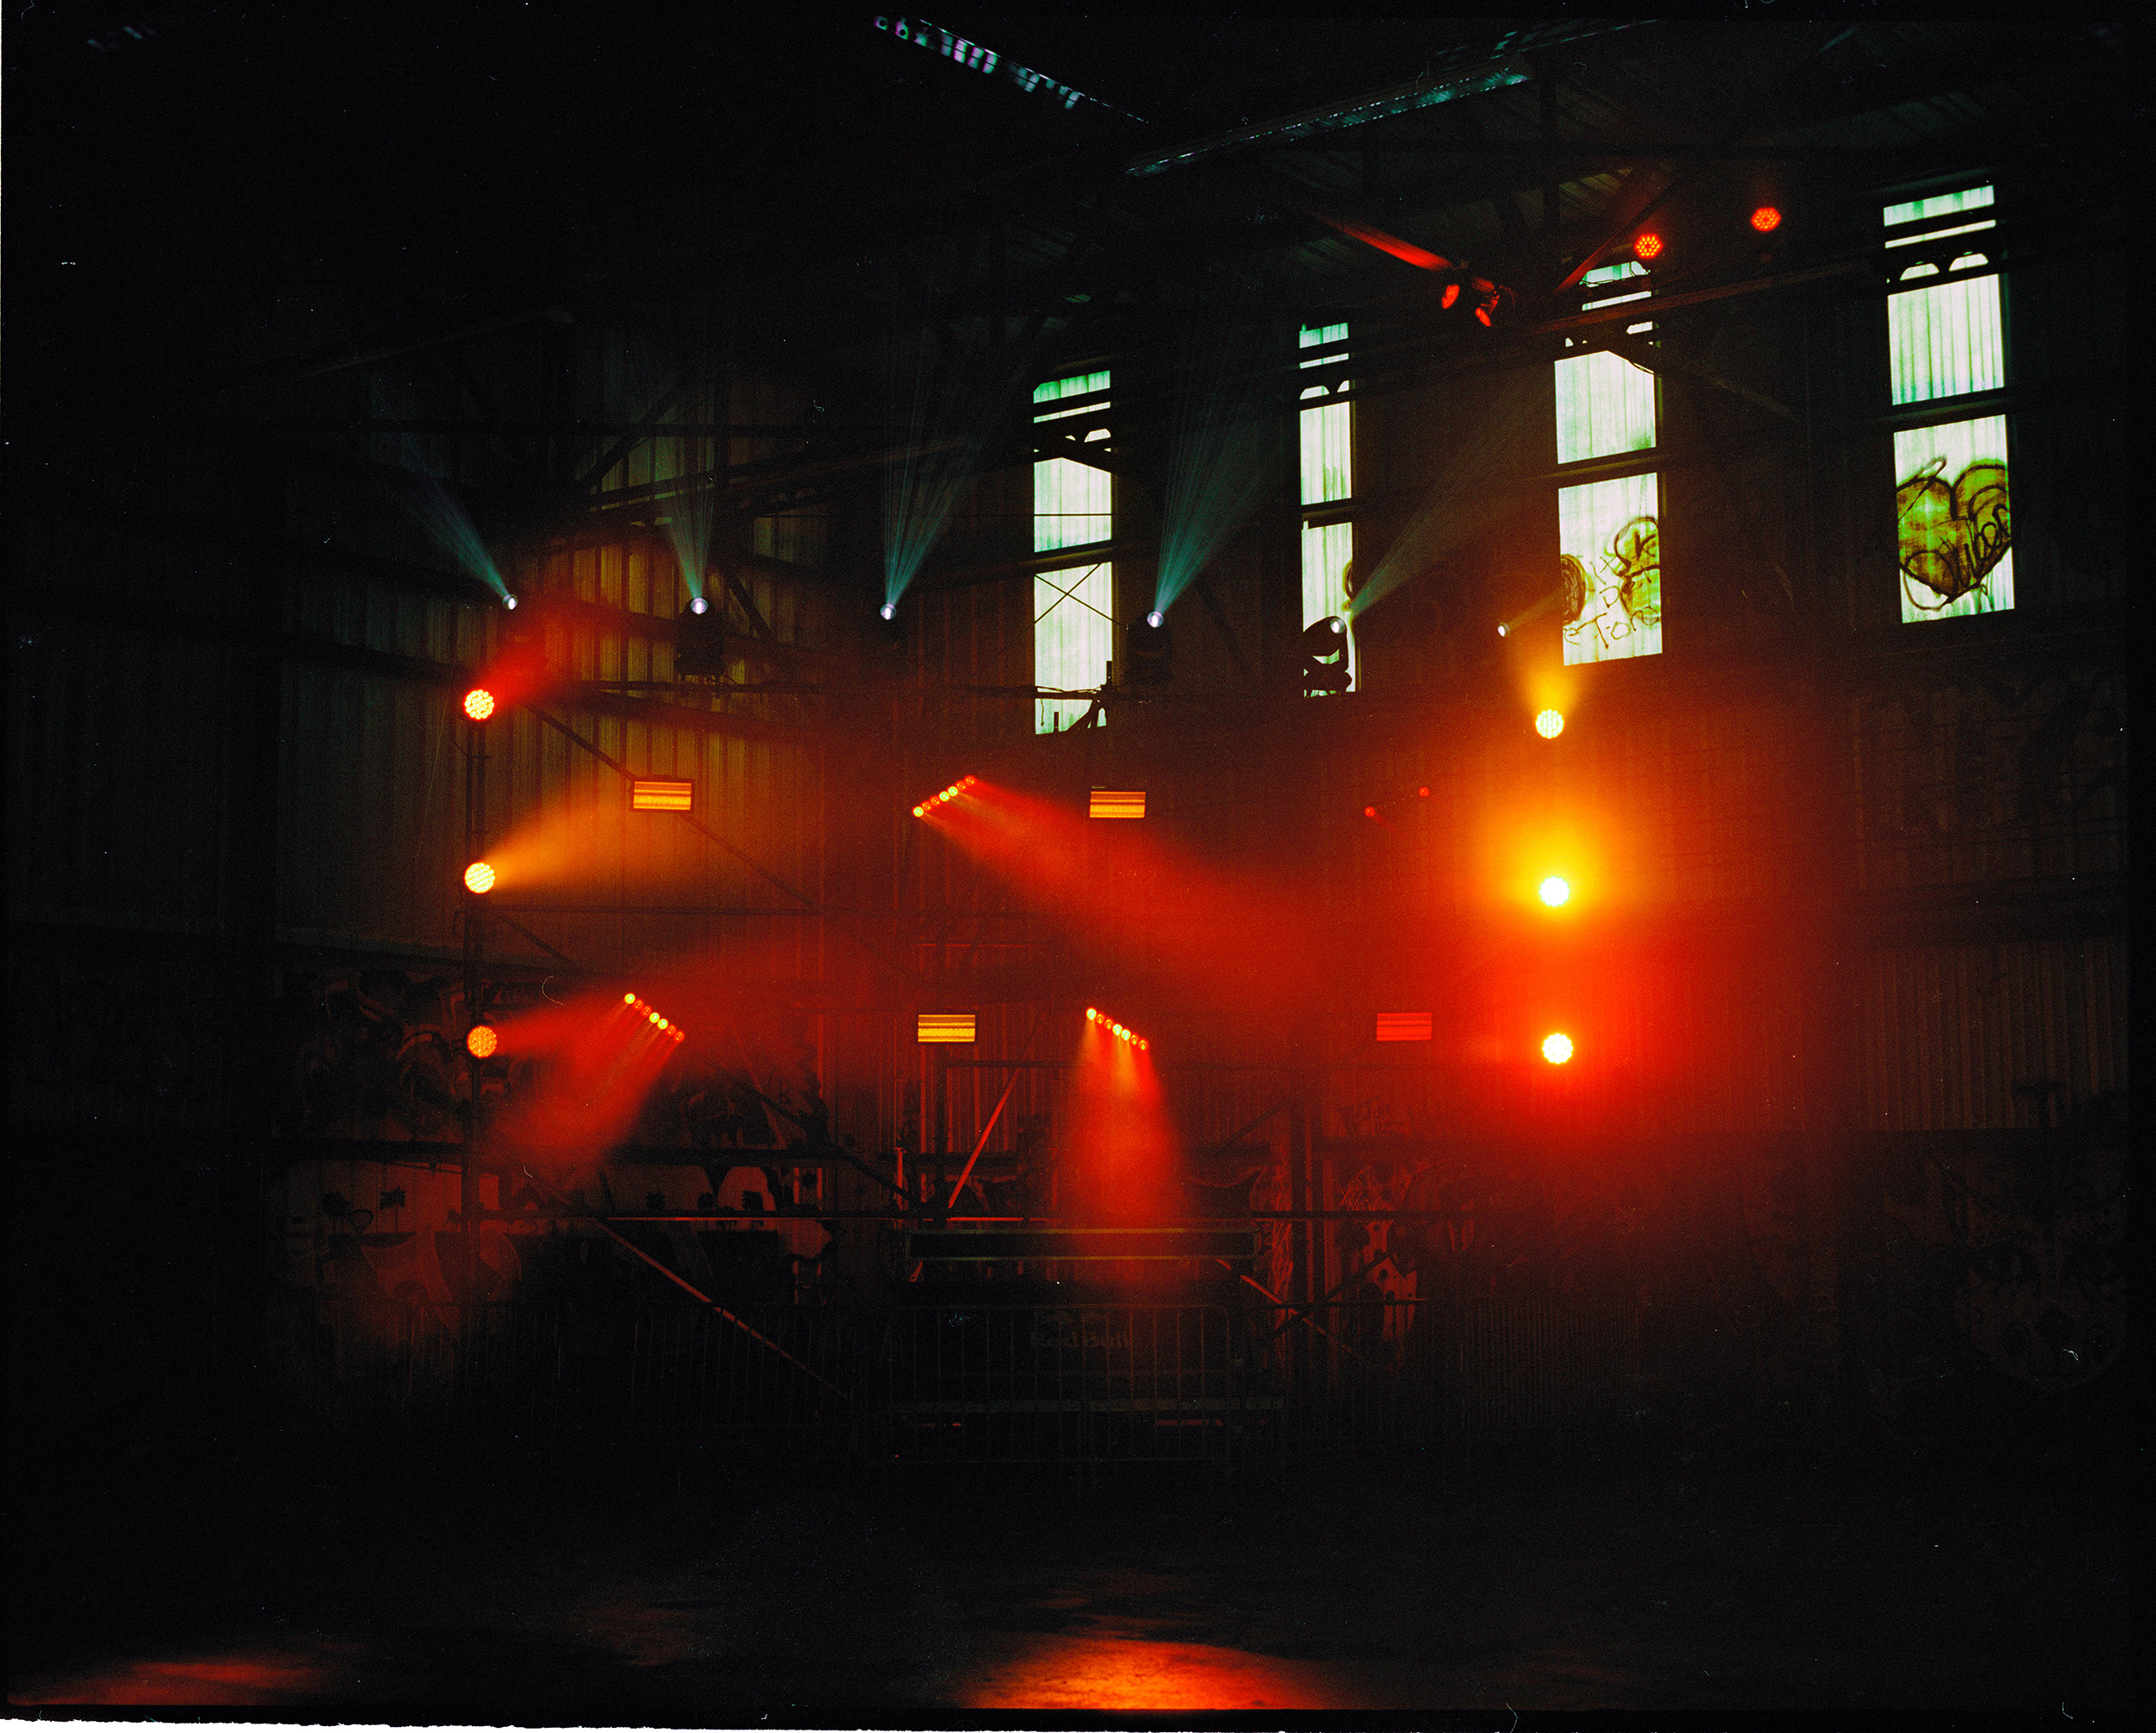 Light Show in a Warehouse, 2017